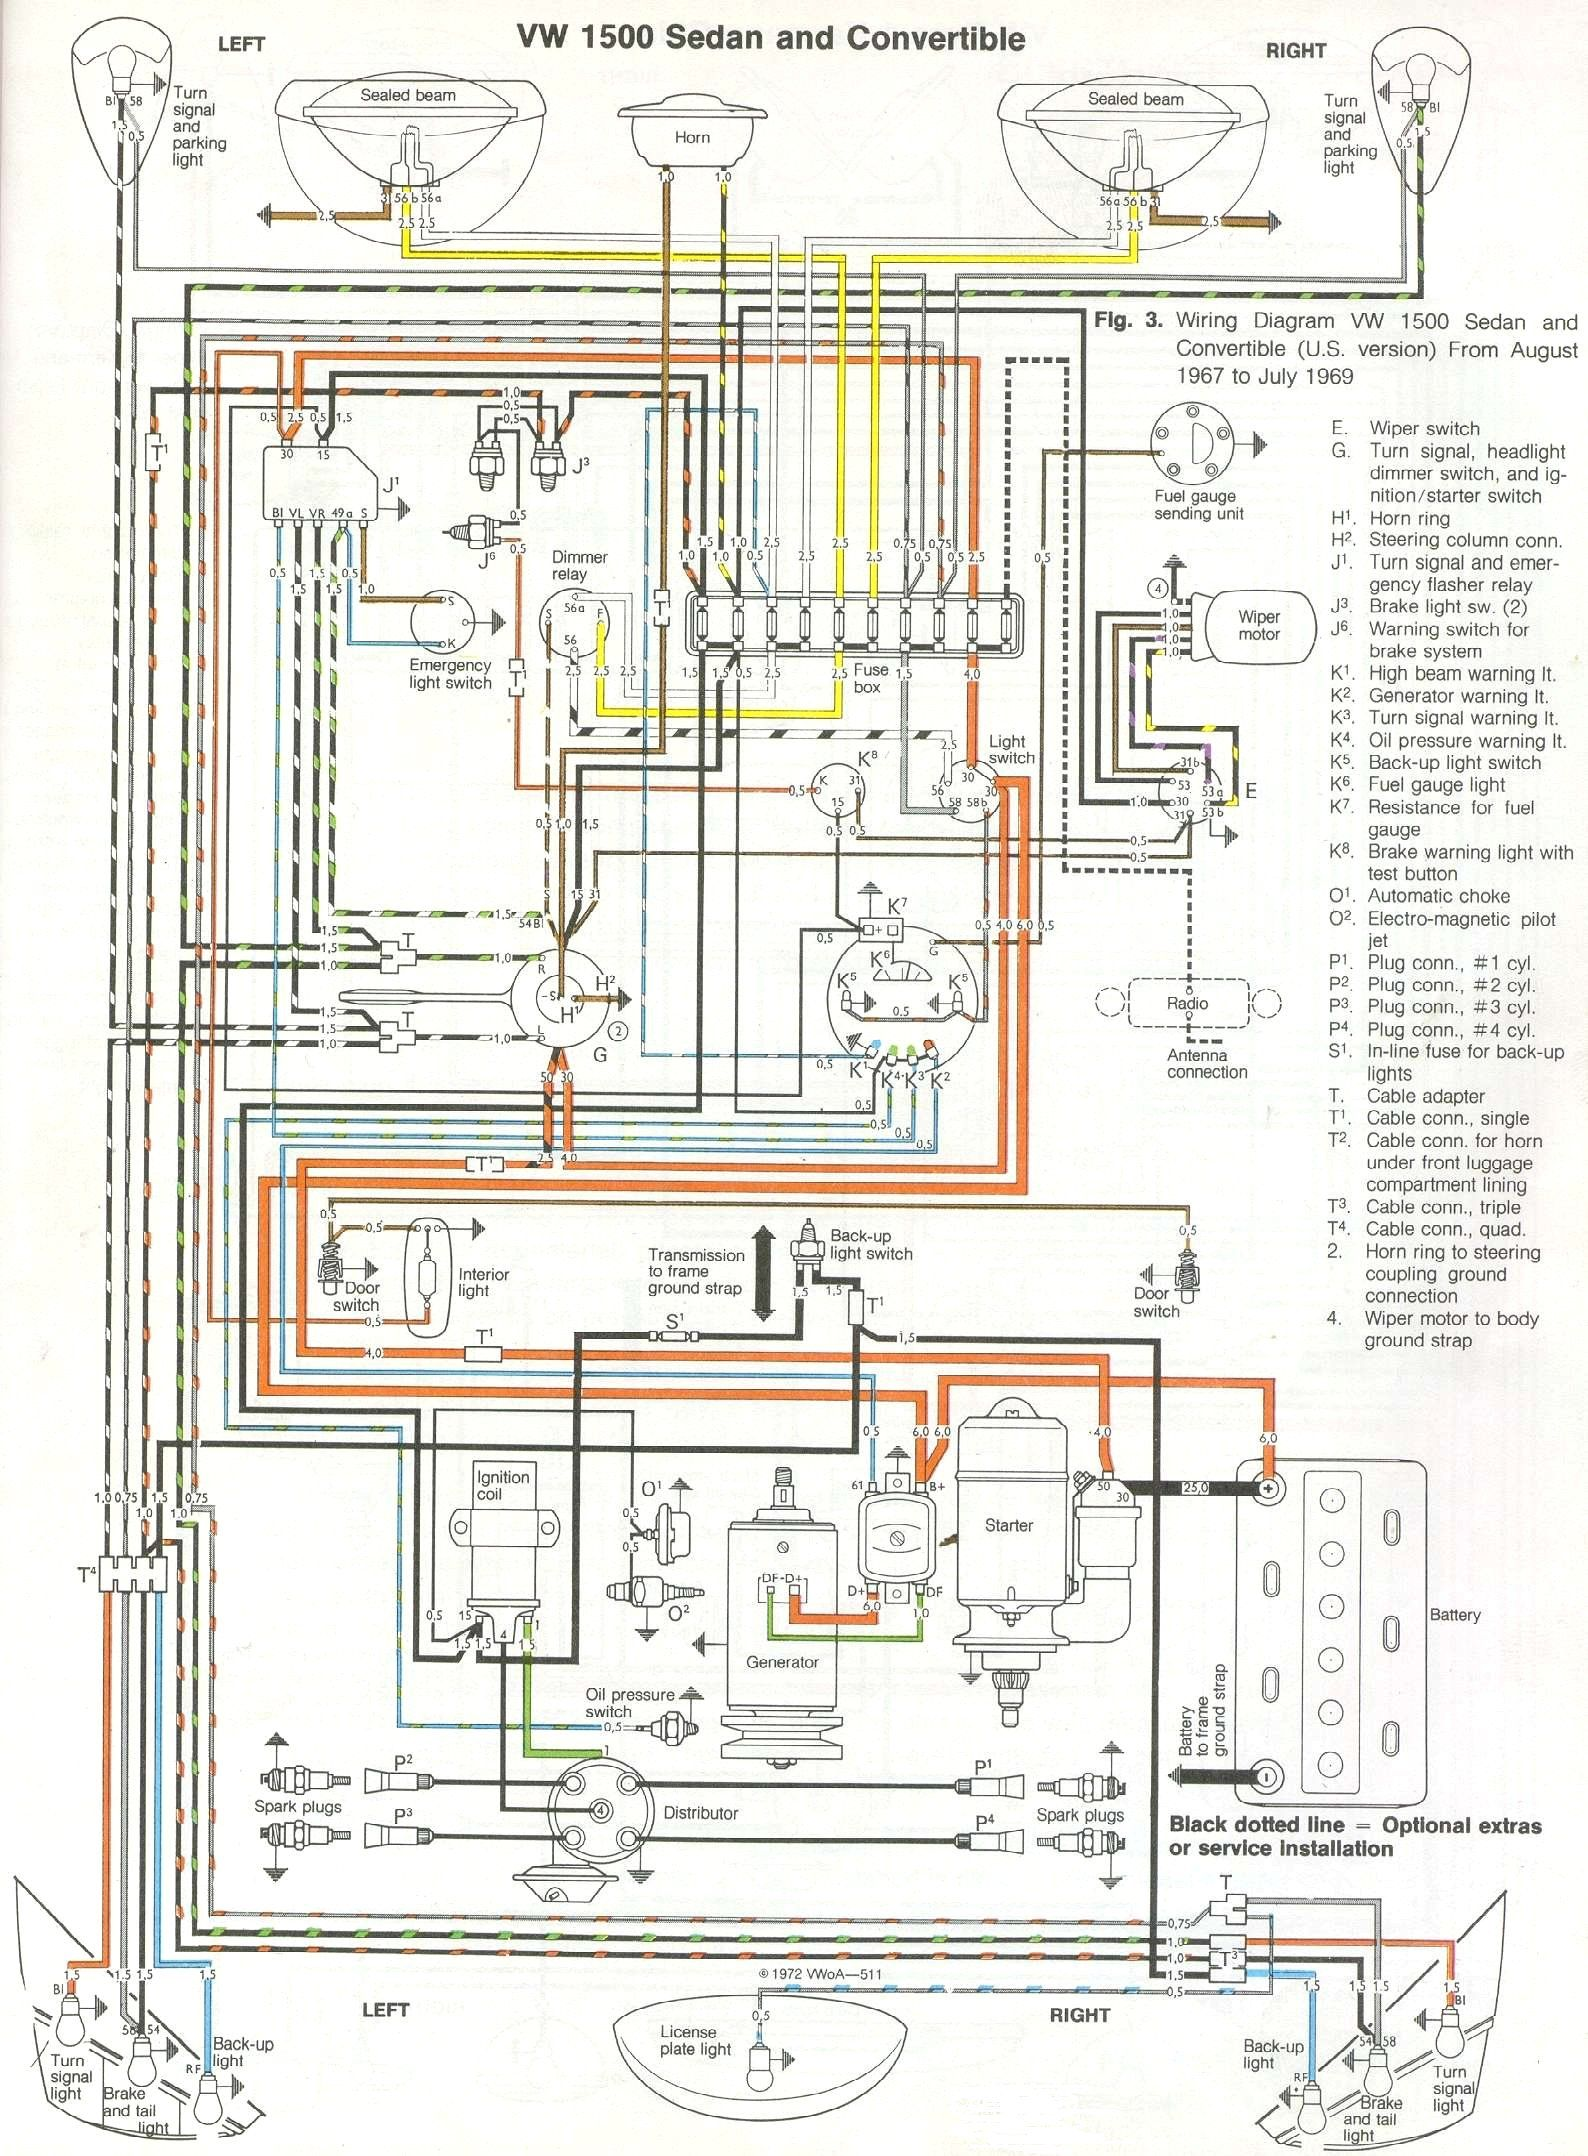 1973 Vw Wiring Diagram Will Be A Thing Car Detailed Schematics Rh Keyplusrubber Com 1974